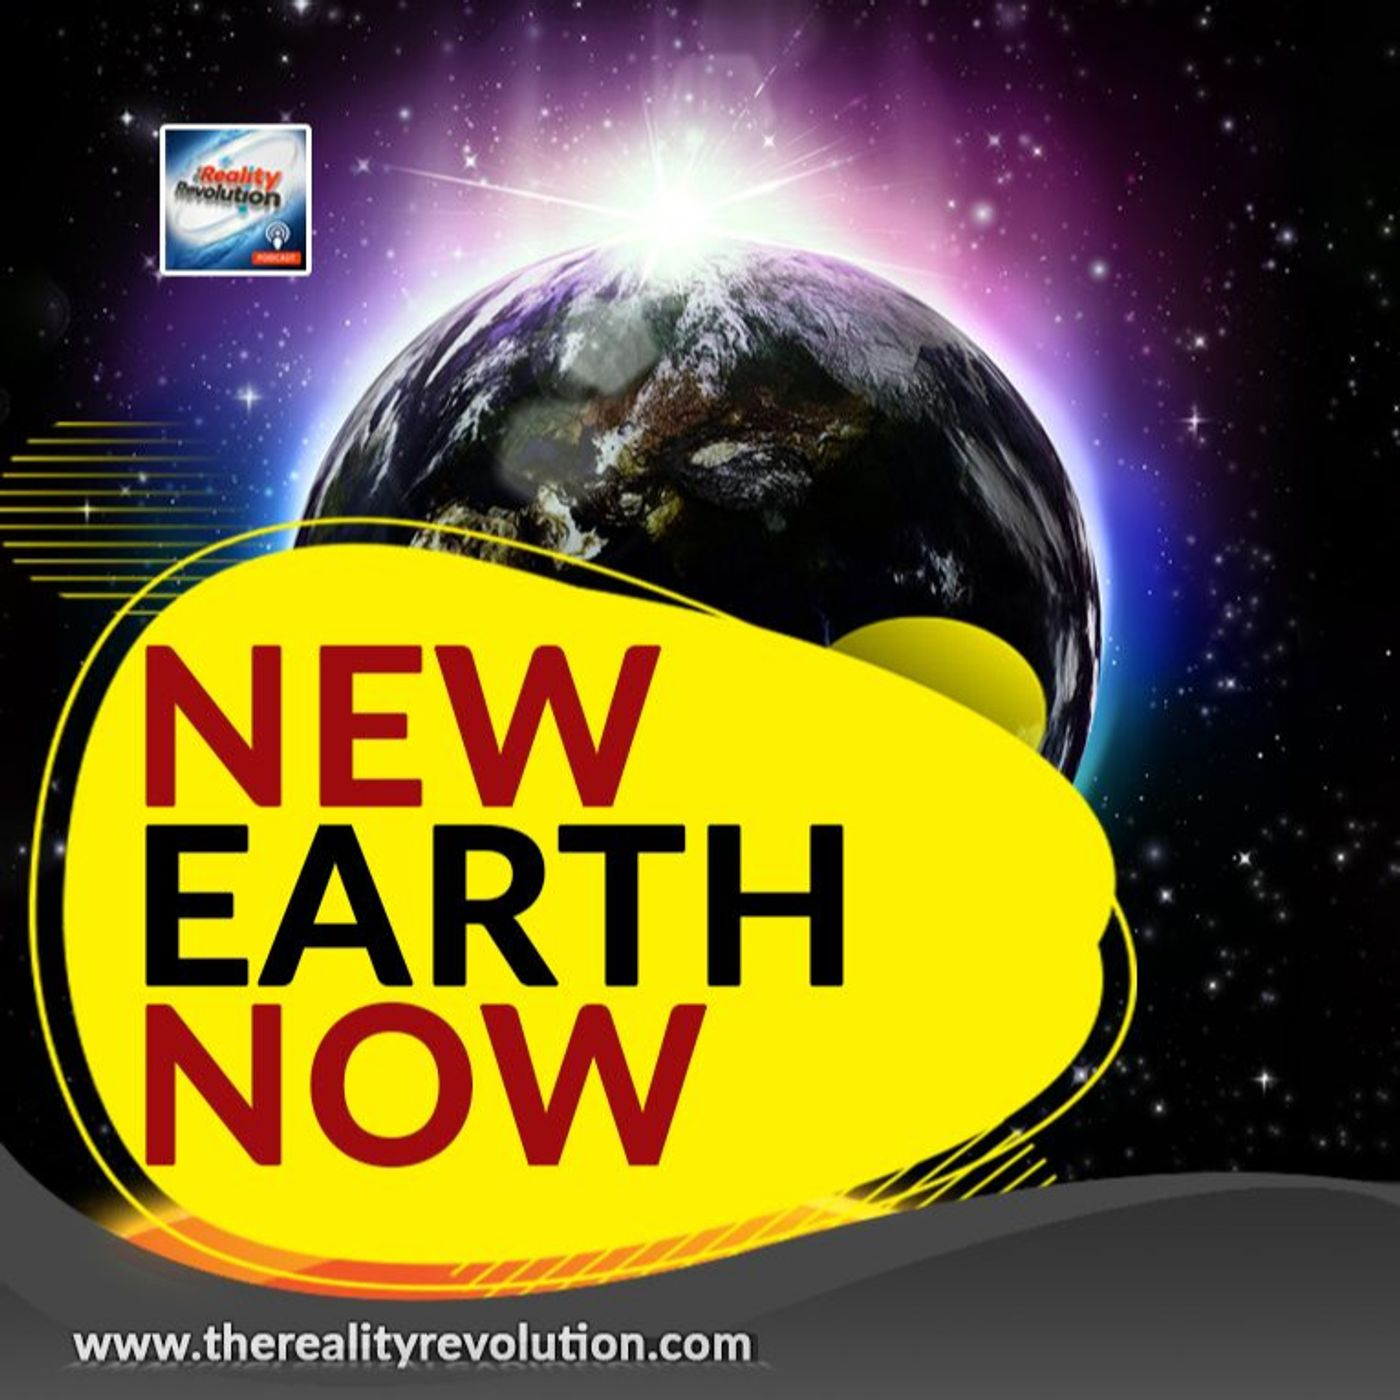 New Earth Now